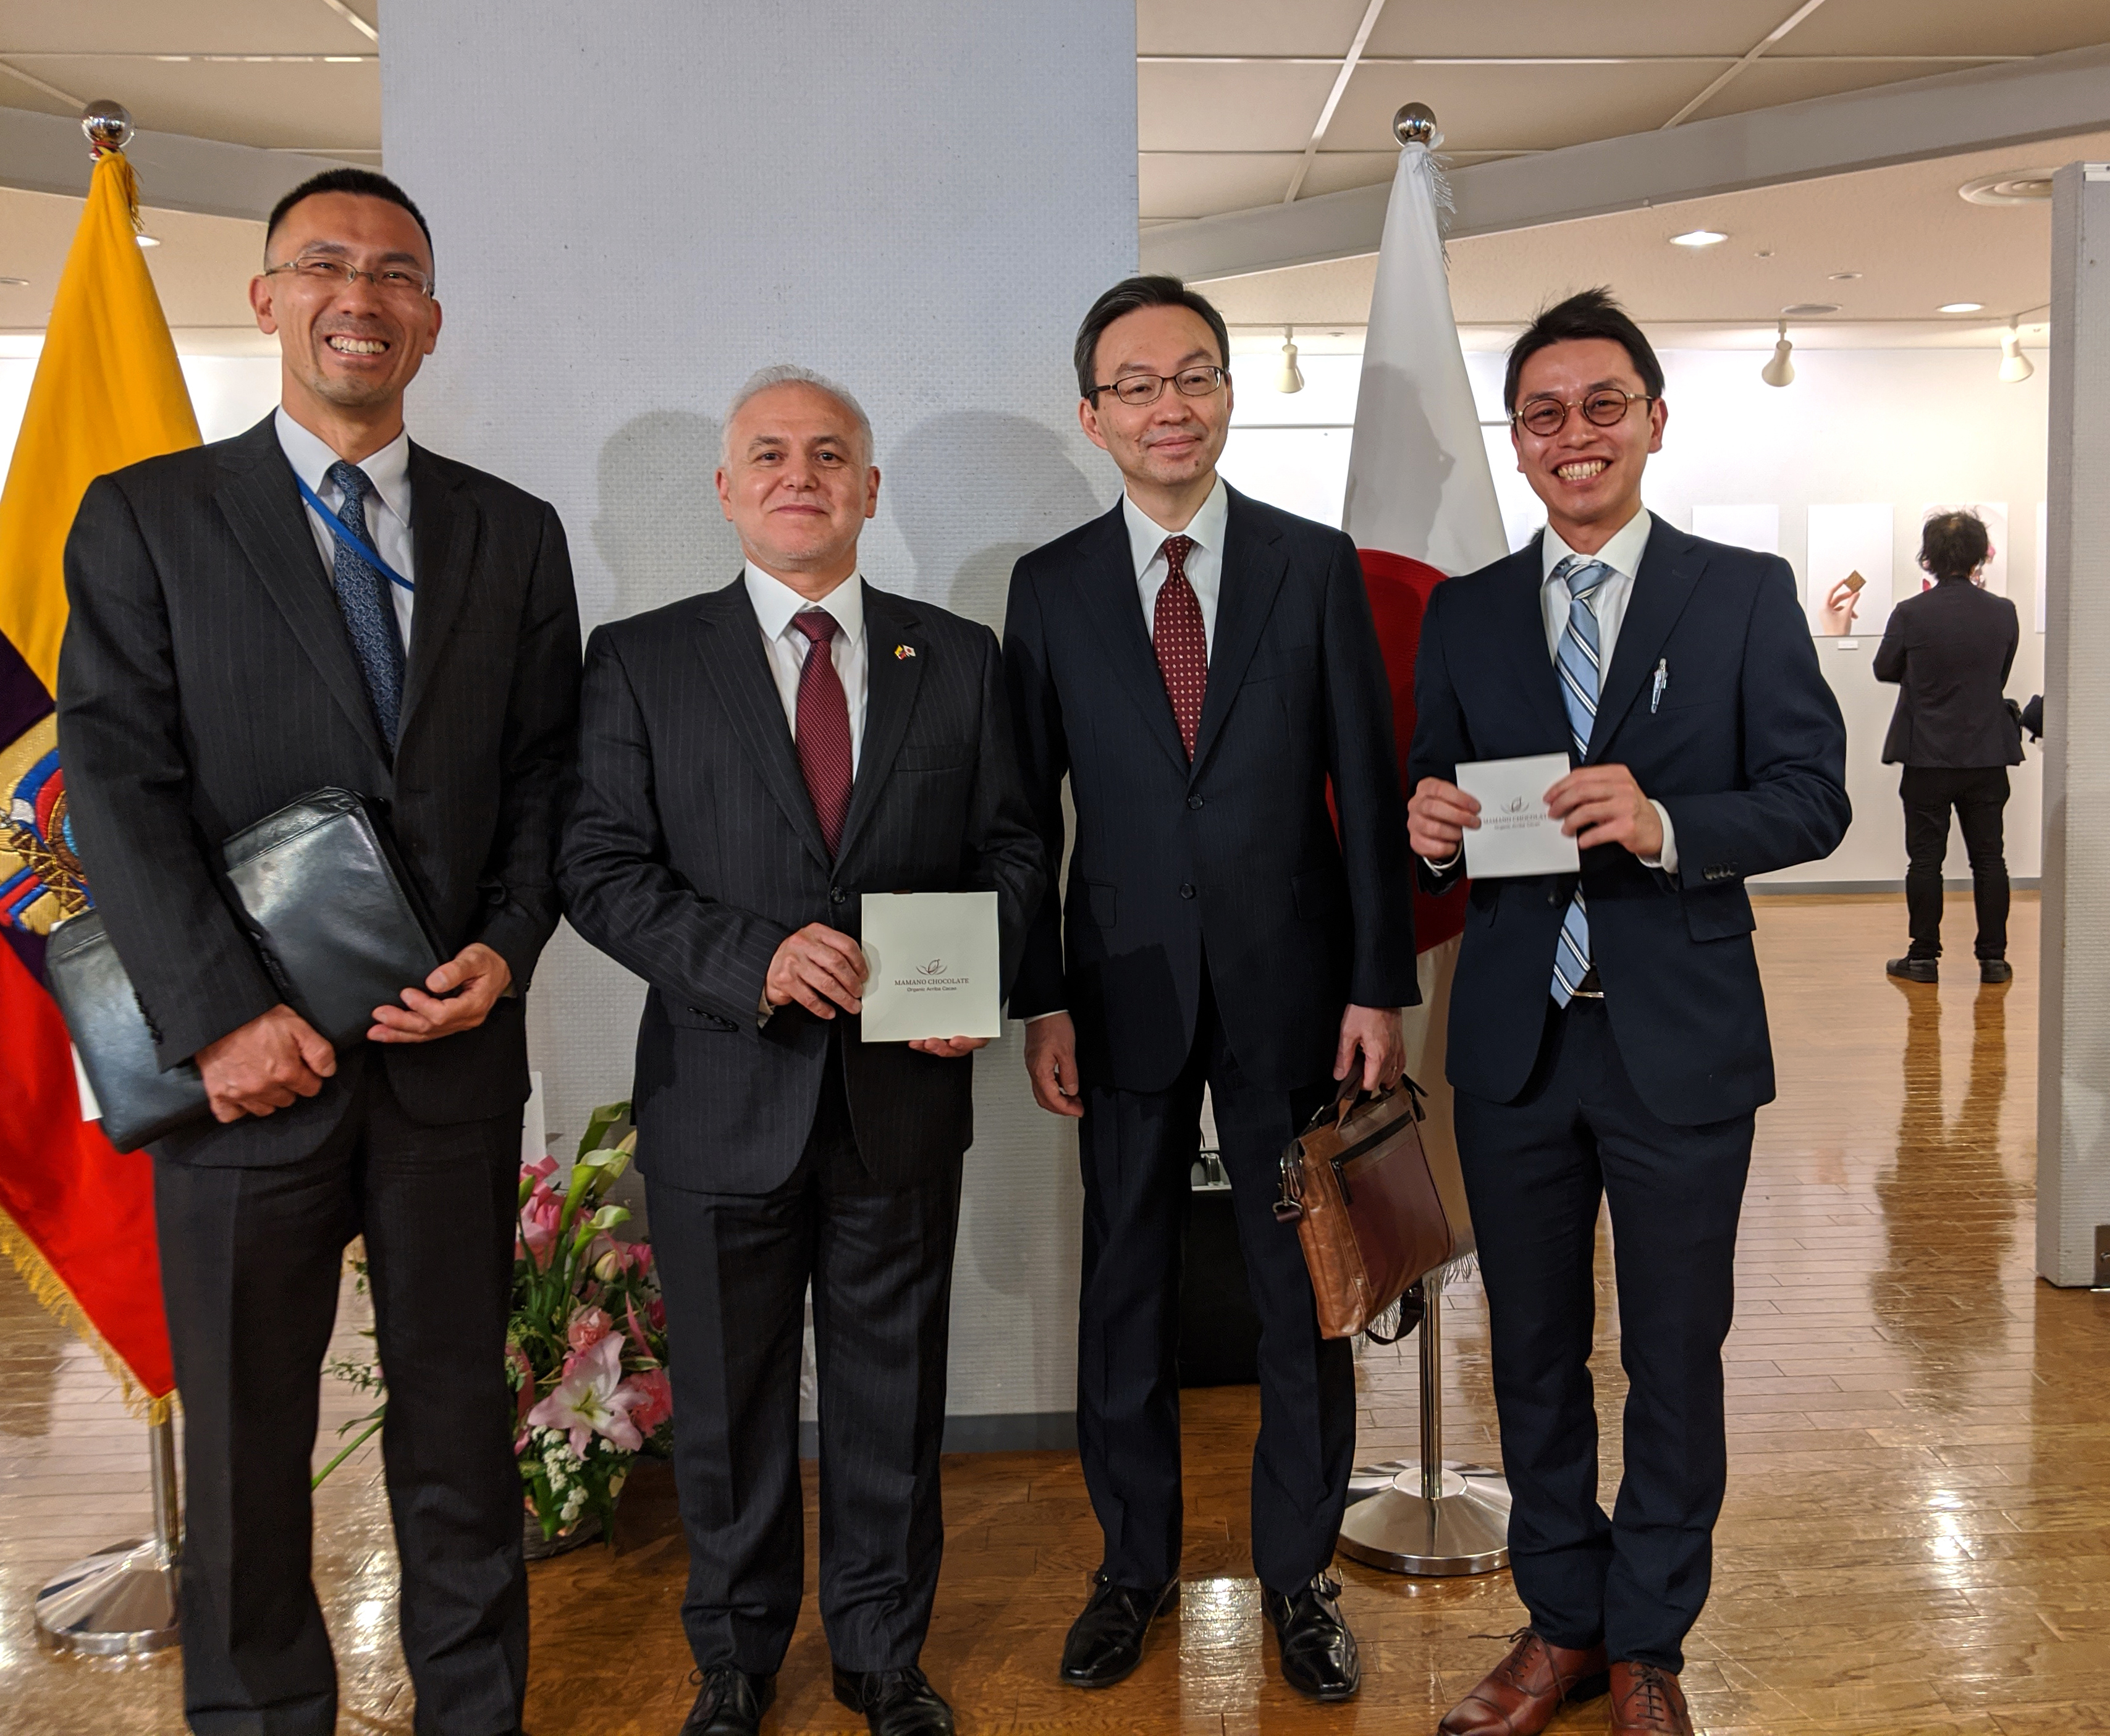 """From Left: Norifumi Kondo, director of the South America Division of the Latin American and the Caribbean Affairs Bureau, Ministry of Foreign Affairs; Jaime Barberis, ambassador of Ecuador to Japan; Yuji Sudo, ambassador of Japan to Ecuador; and Kotaro Ezawa, CEO of Mamano Chocolate Inc., at an opening ceremony of """"The Fine Aroma of Our Identity"""" exhibition hosted by the Ecuadorian Embassy and Mamano Chocolate, at the Takanawa Civic Center Gallery in Tokyo on Feb.25. Attendees enjoyed Mamano Chocolate's high-percentage cacao chocolate made with high-quality Ecuadorian fine aroma cocoa. 